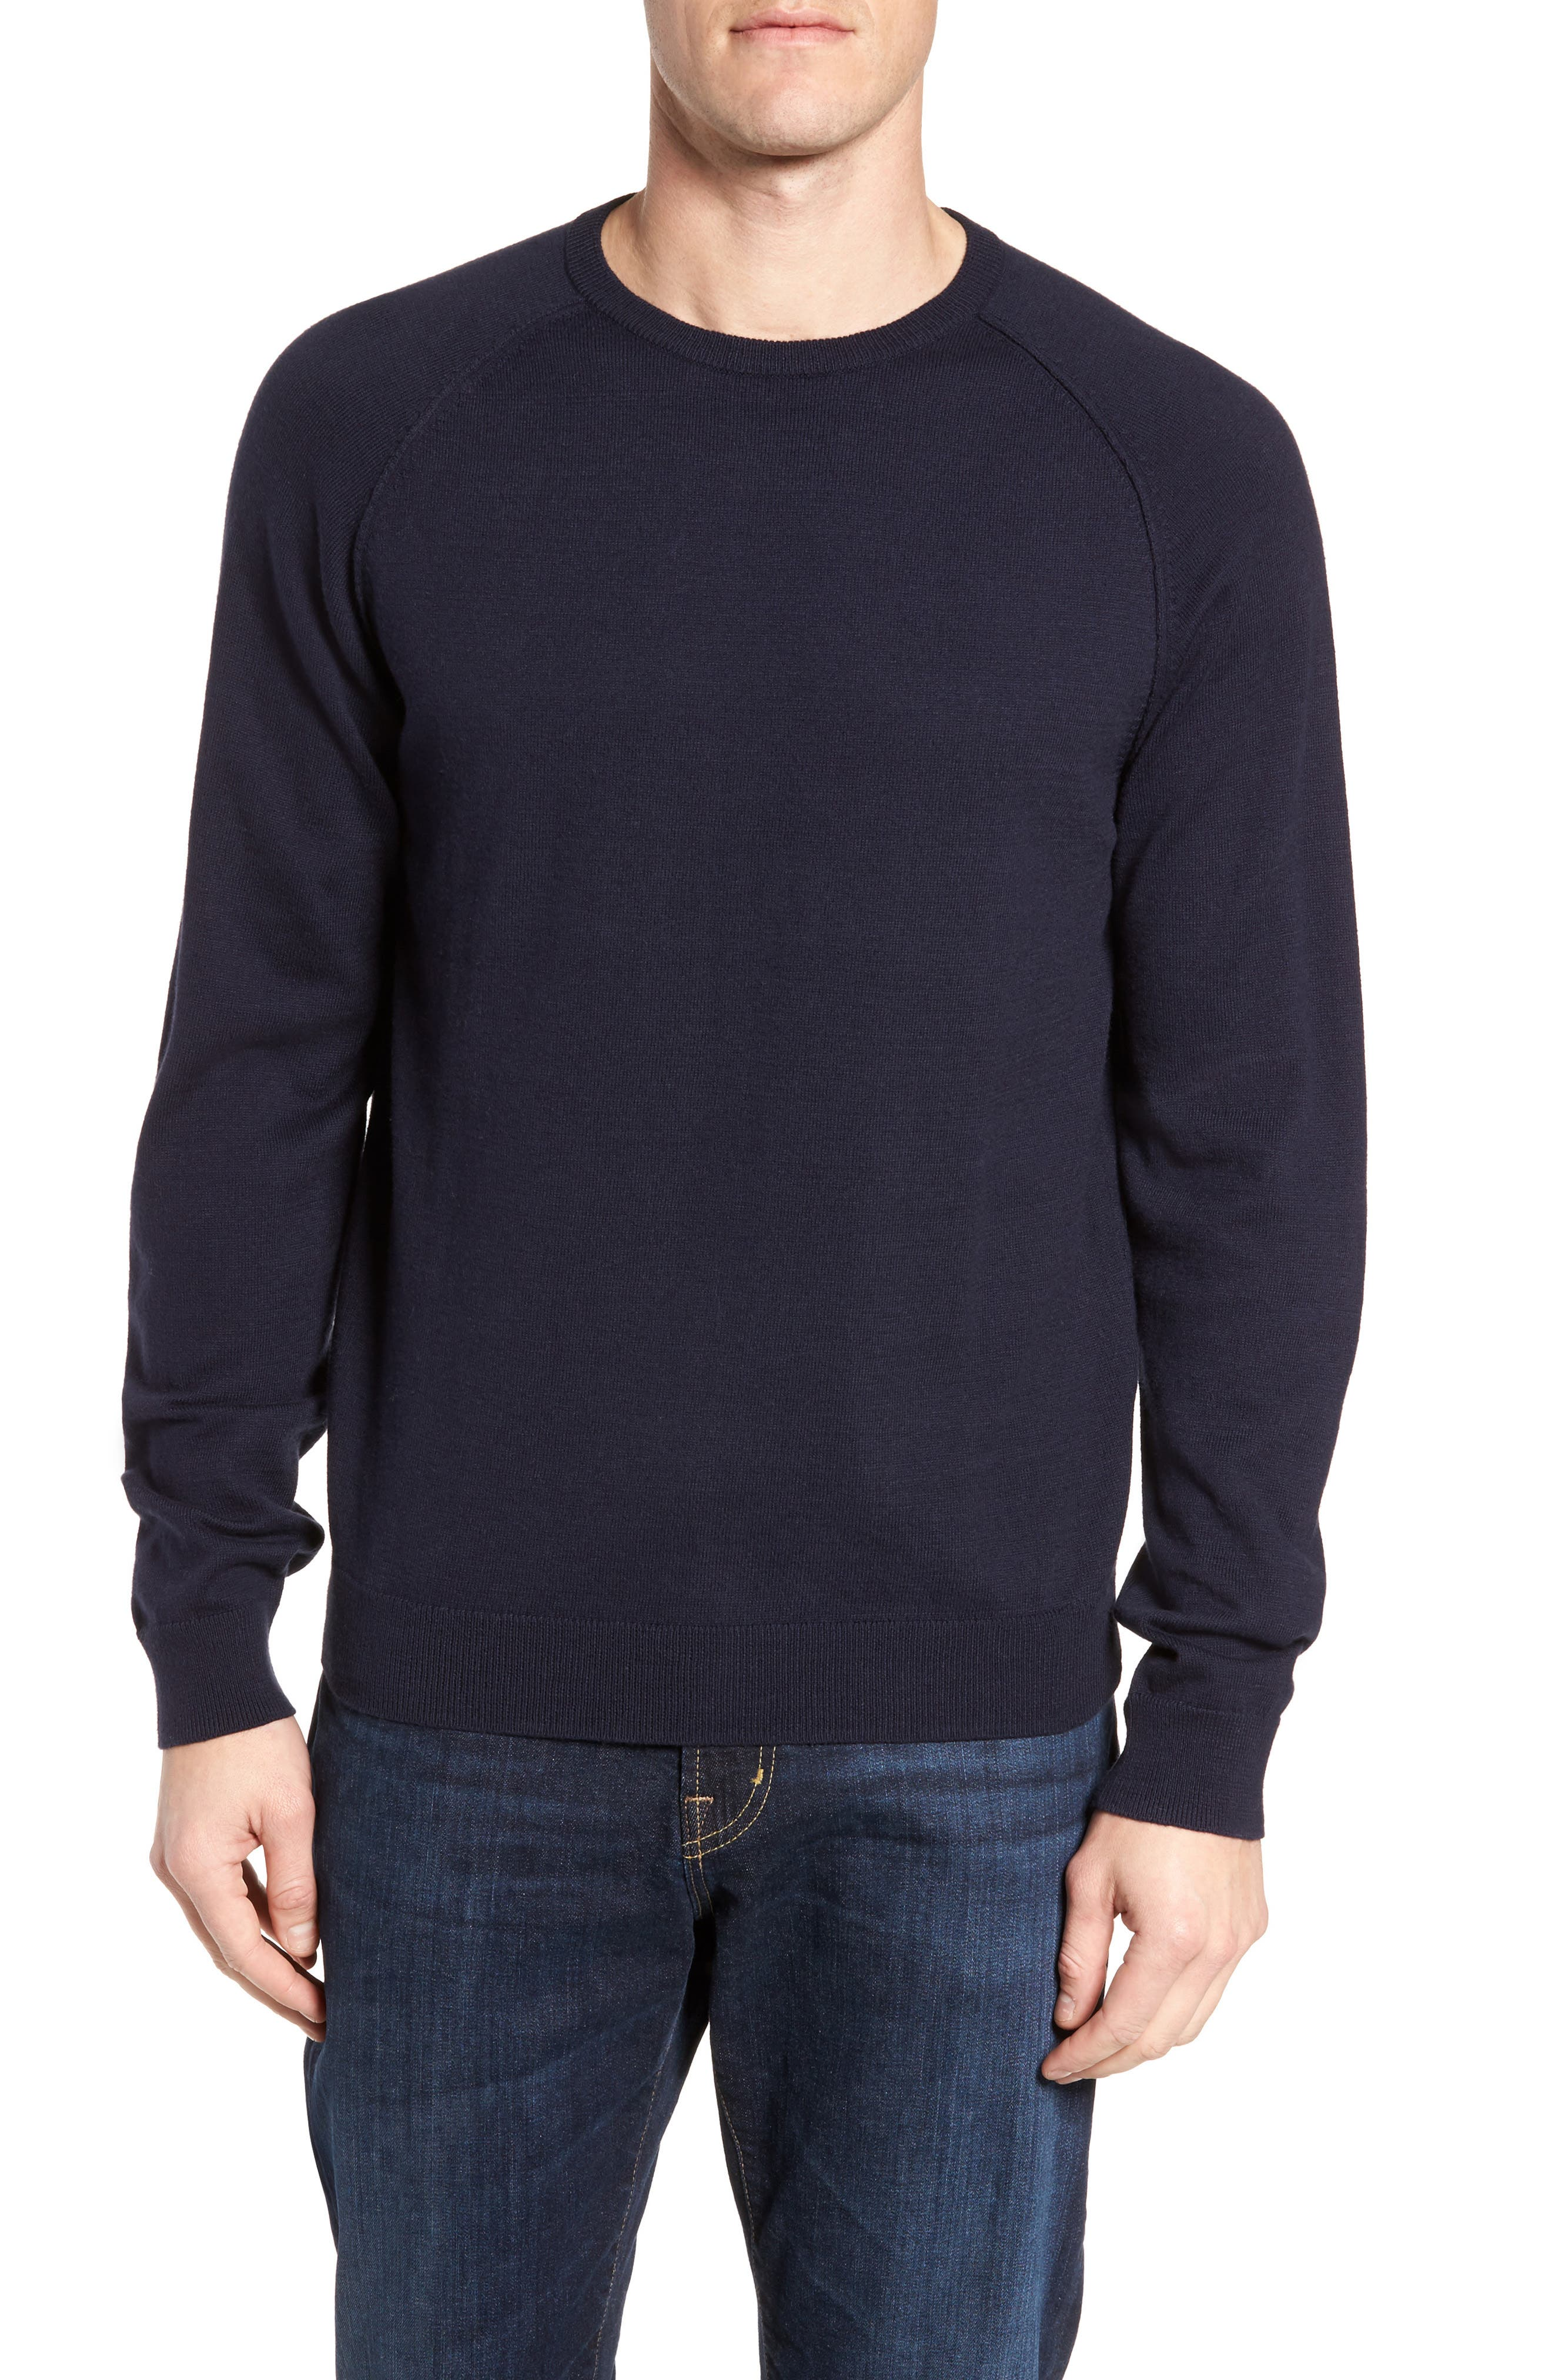 Nordstrom Men's Shop Saddle Shoulder Cotton & Cashmere Sweater